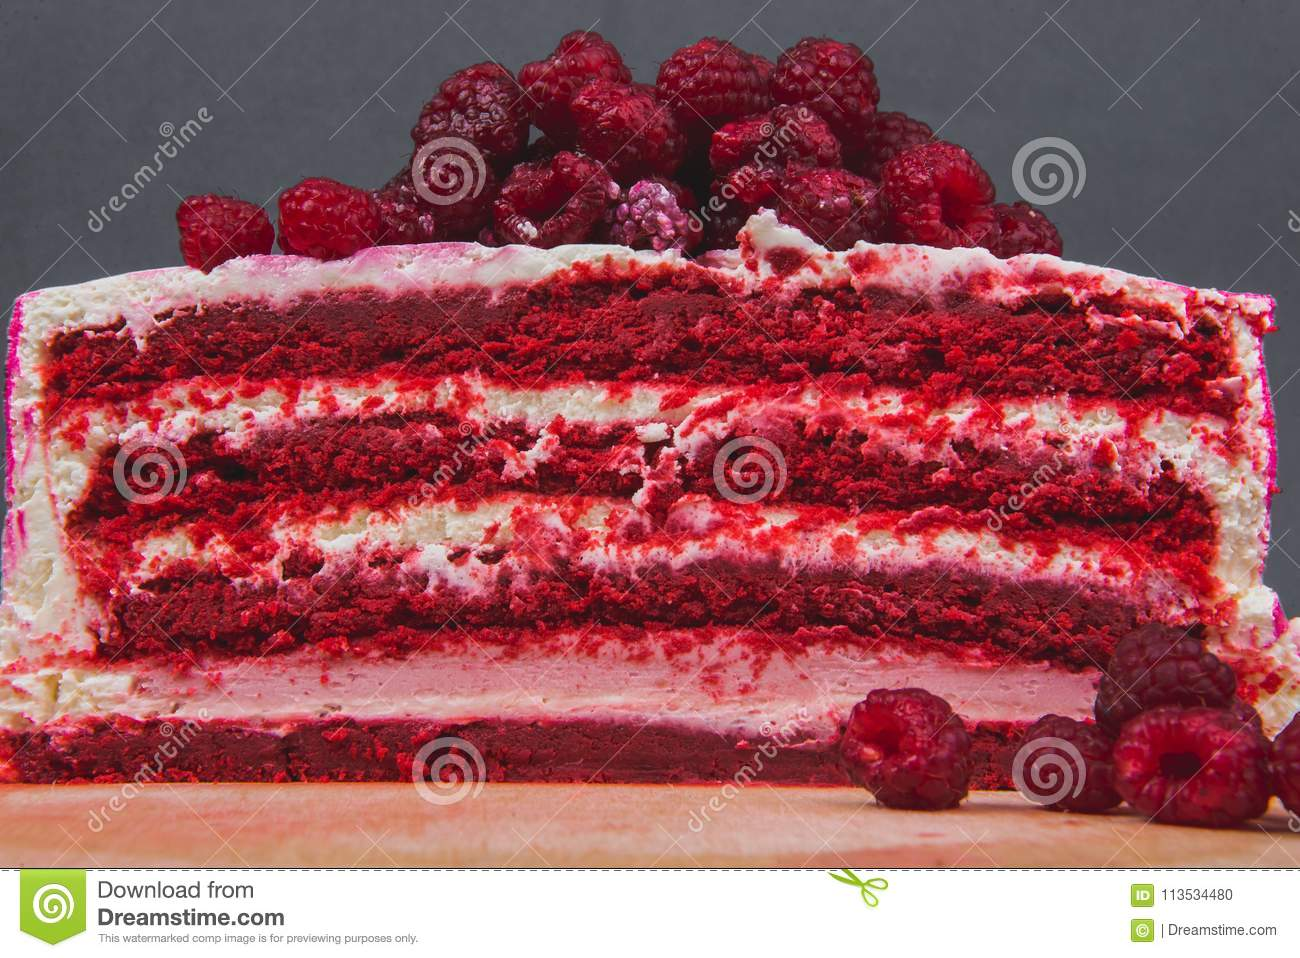 A delicious cake decorated with raspberries on a gray background.